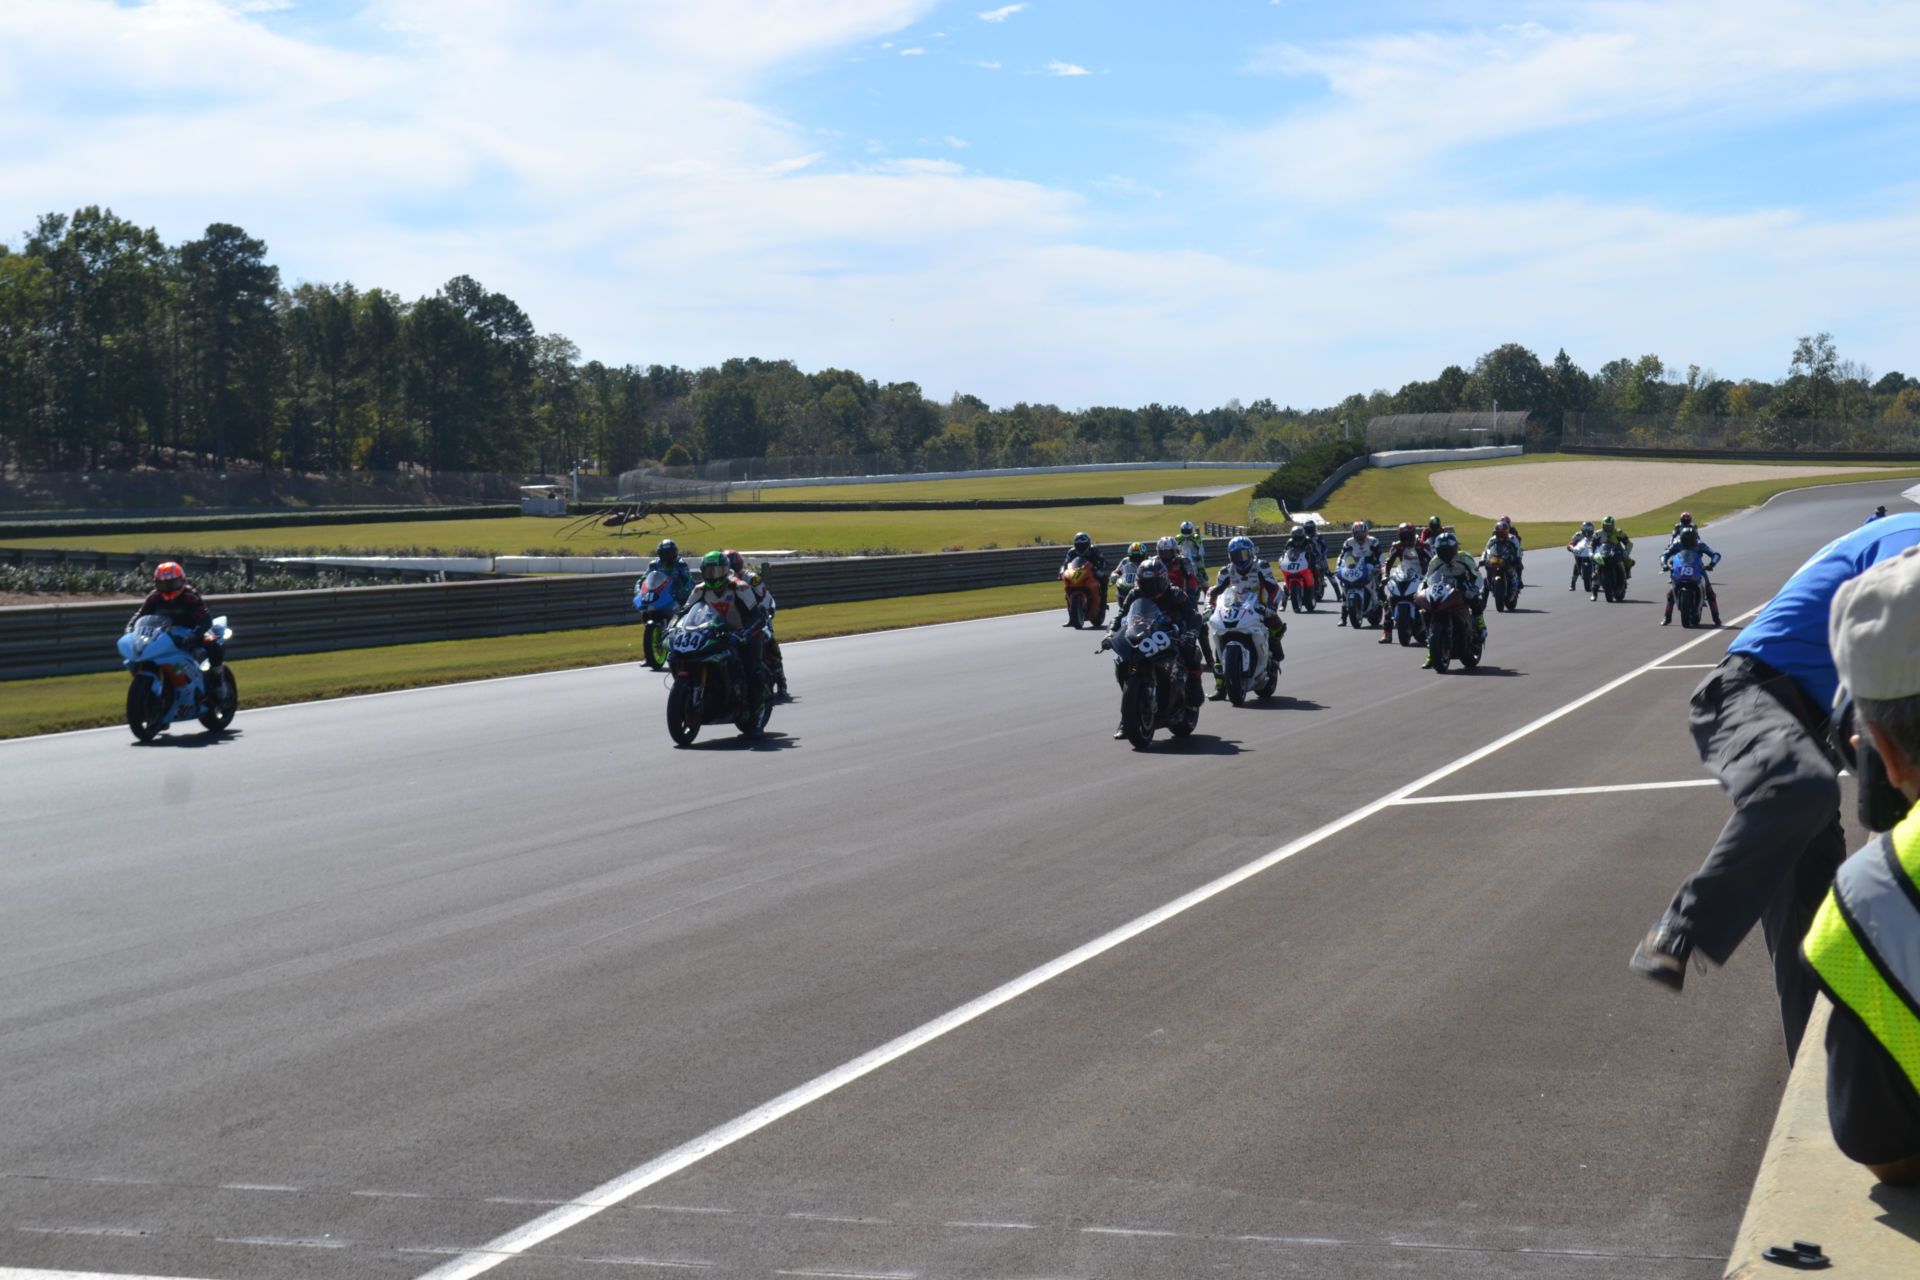 The grid just prior to the start of the WERA/N2 Racing 4-hour endurance race at Barber Motorsports Park. Photo by David Swarts.